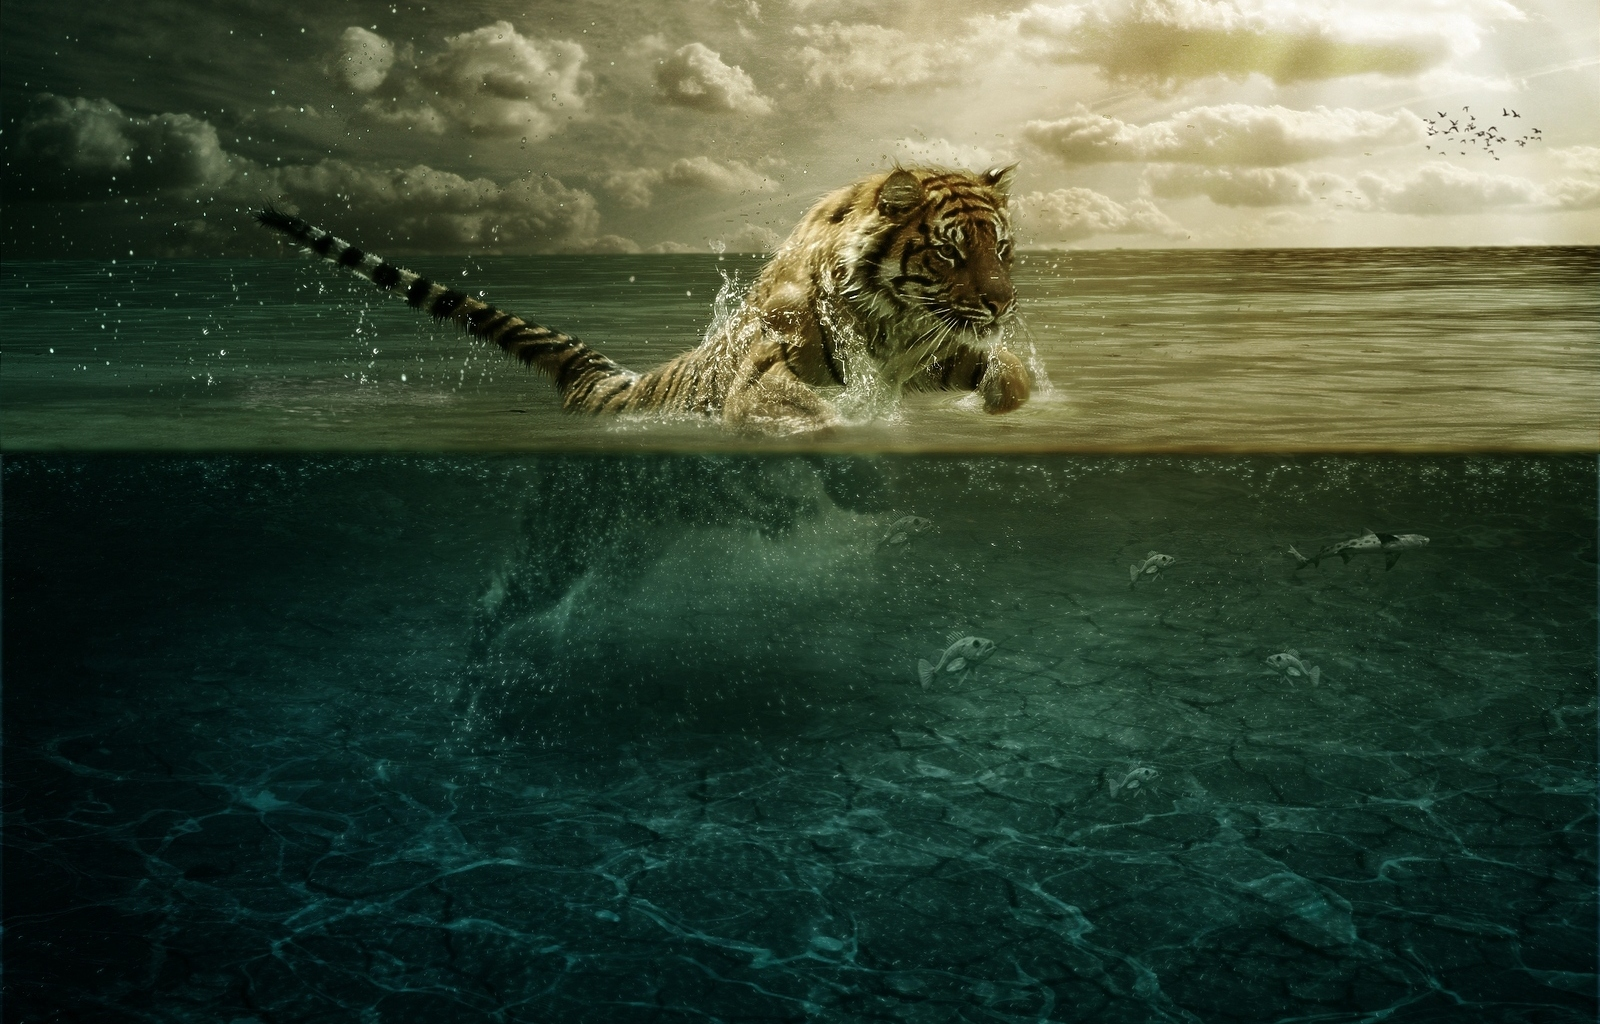 39220 download wallpaper Animals, Tigers screensavers and pictures for free